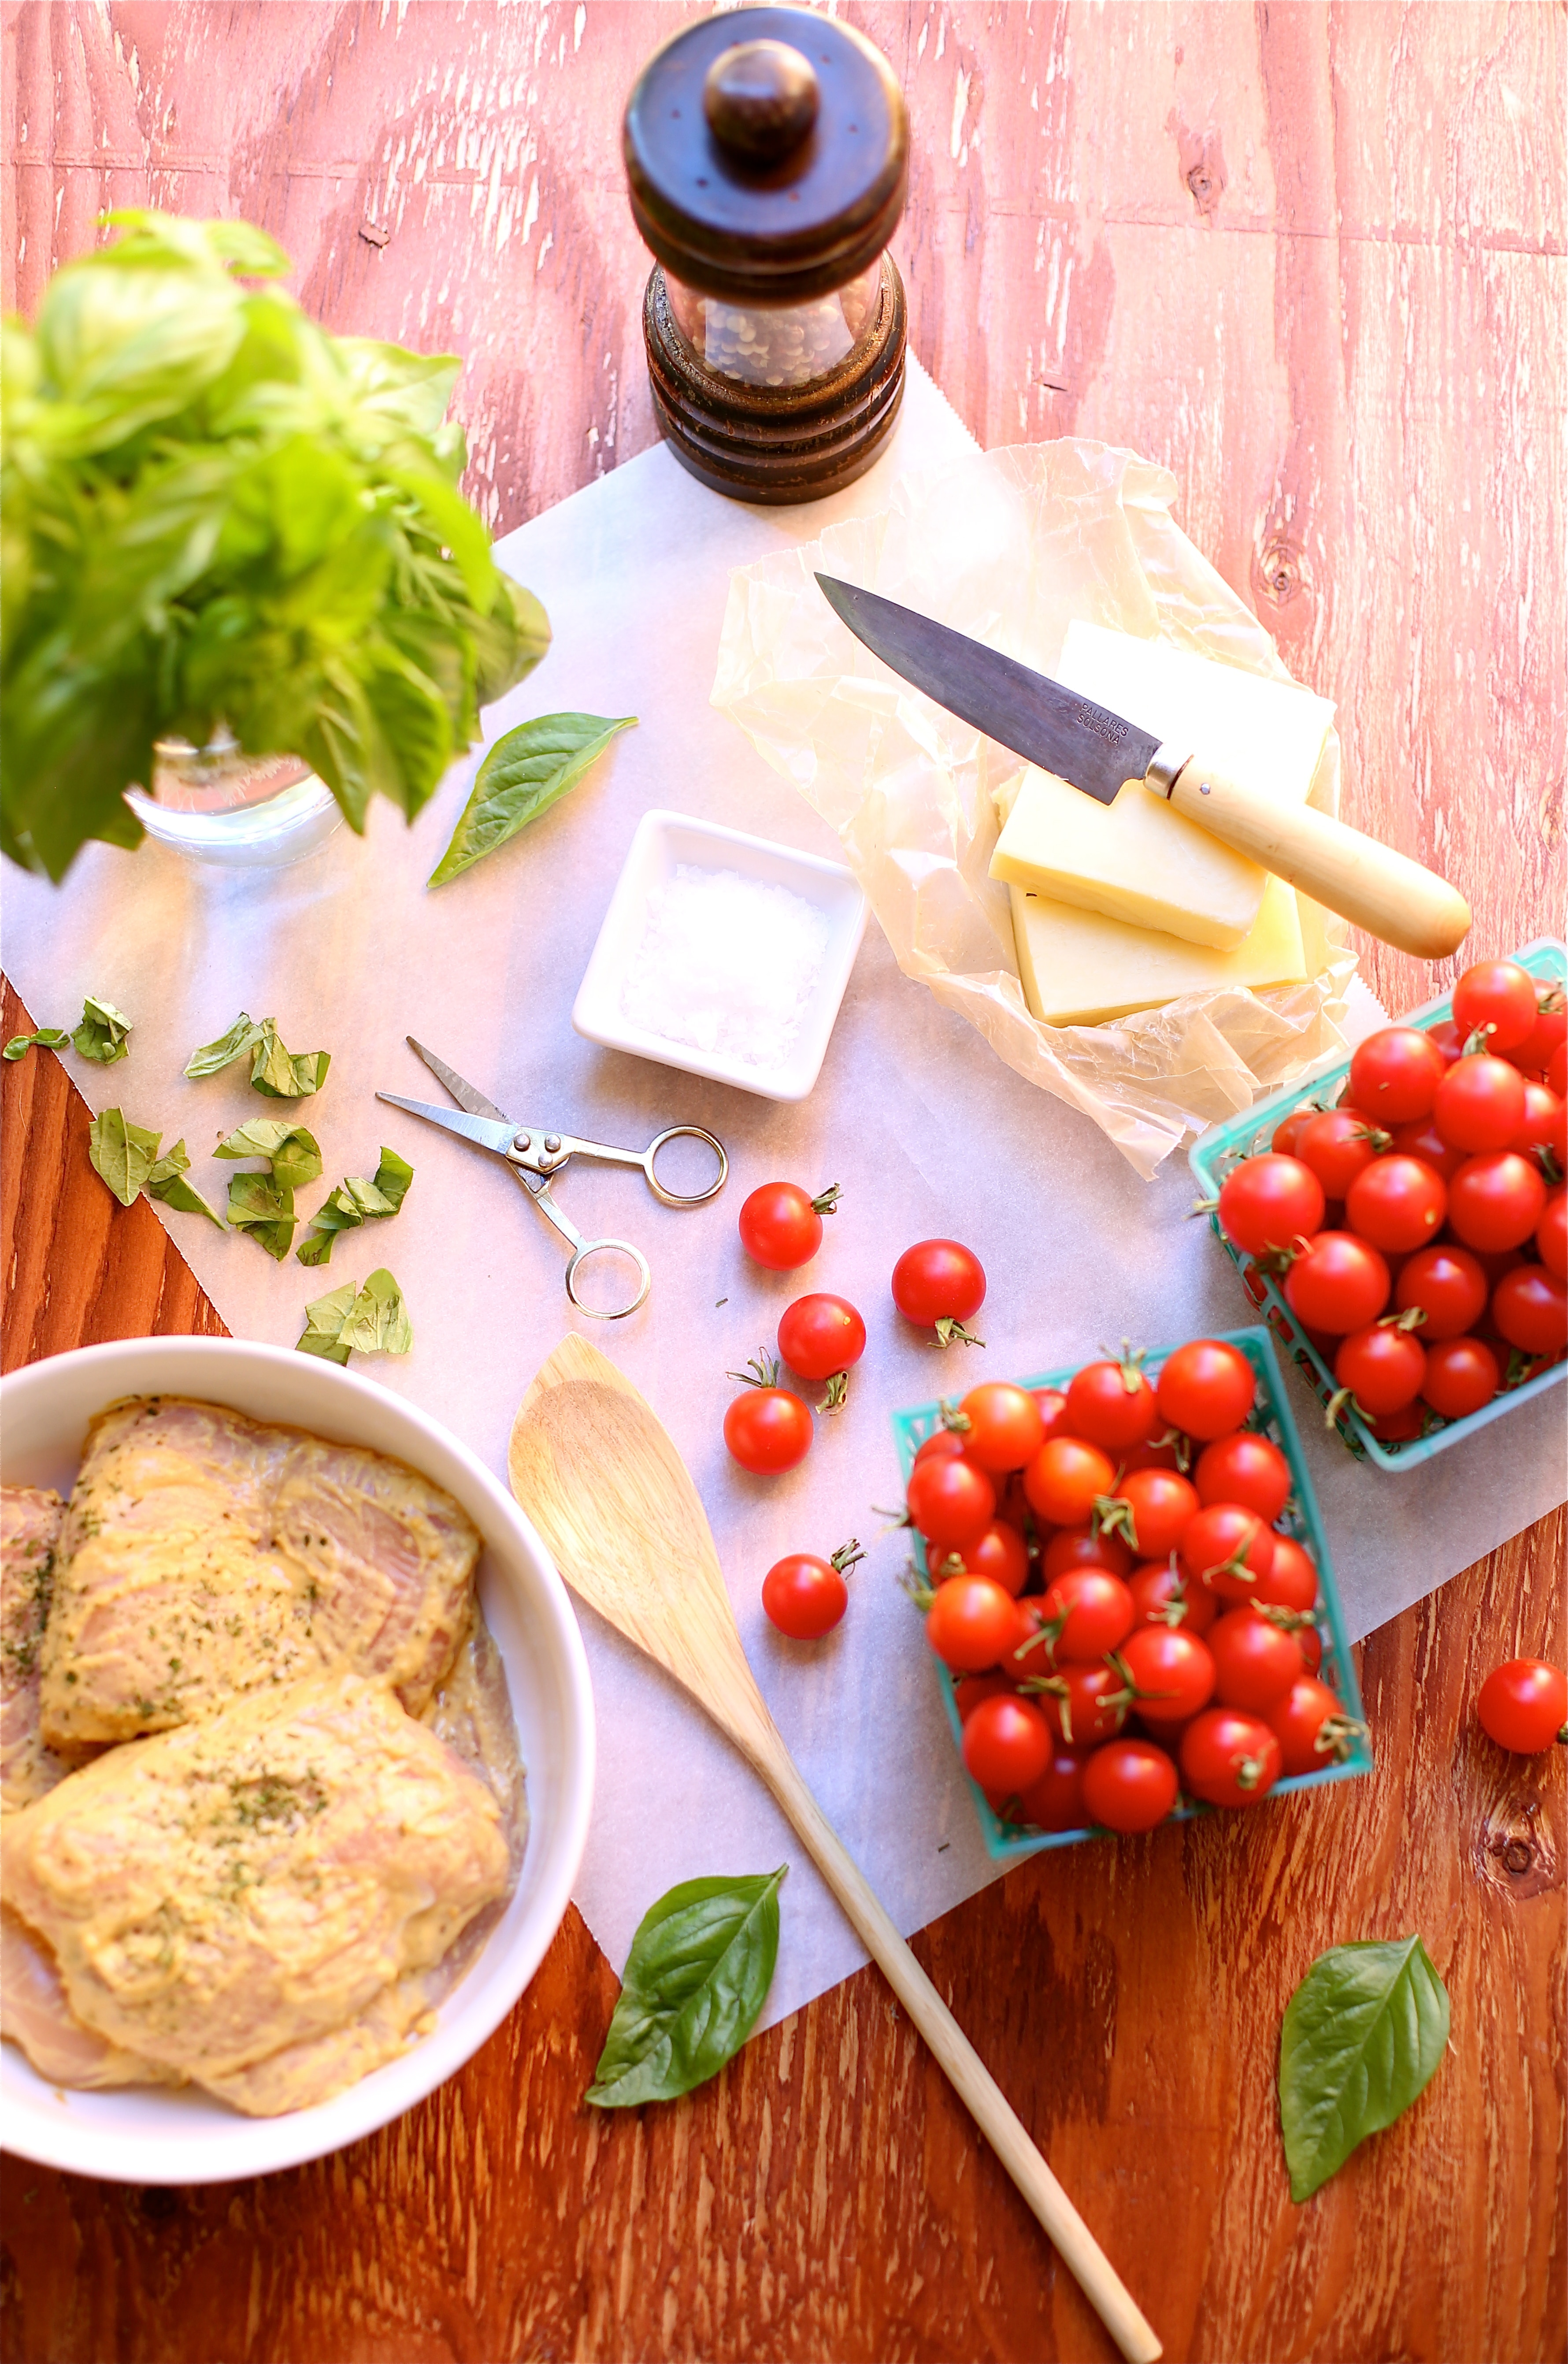 A photo of ingredients to be made into a meal:  chicken, tomatoes, basil, cheese, seasonings.